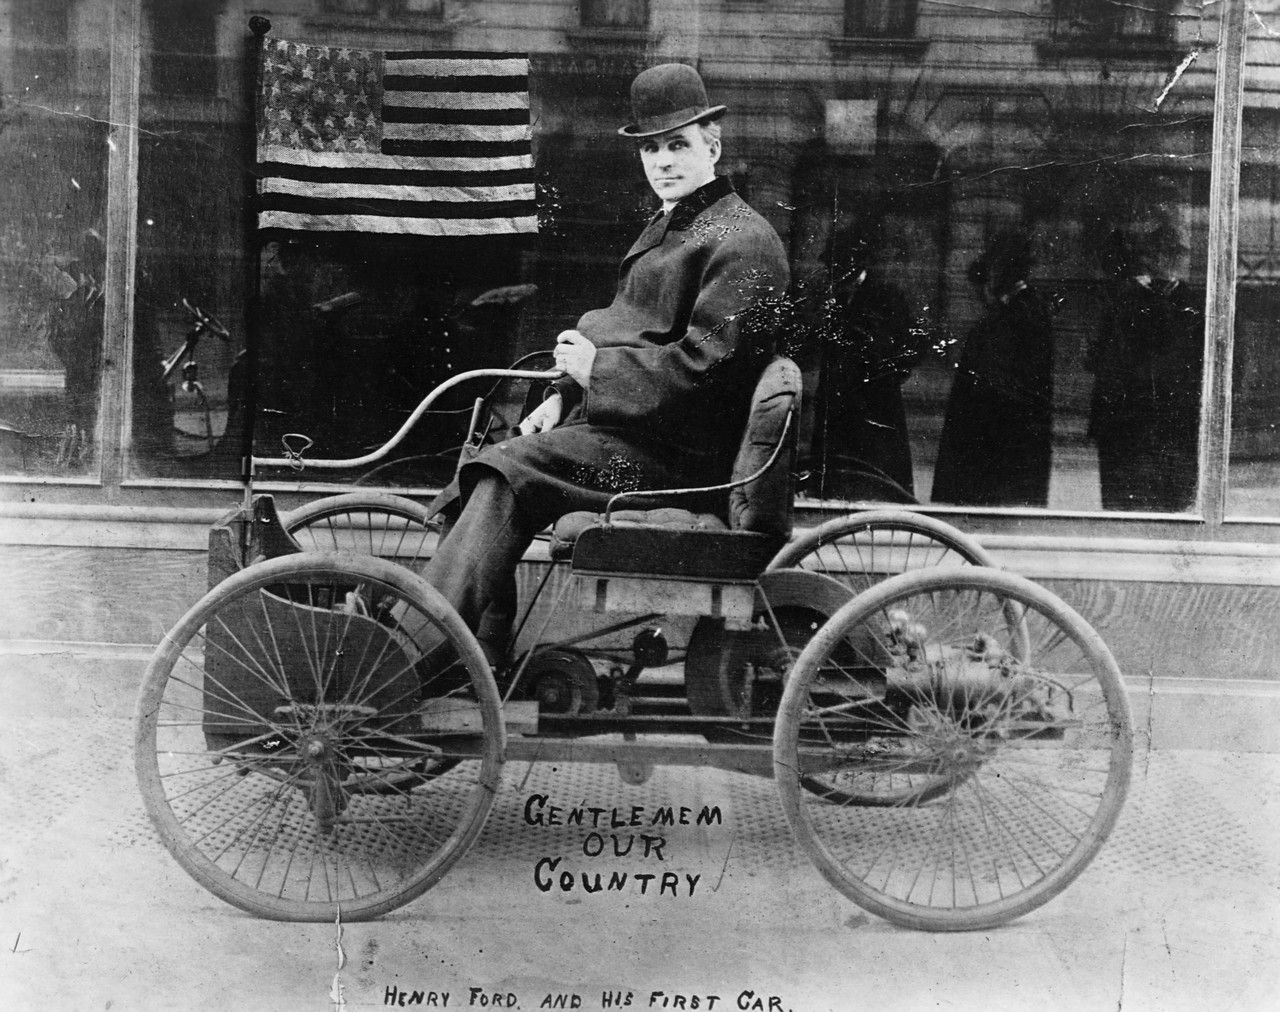 Henry Ford Poses On The First Car He Built The Ford Quadricycle